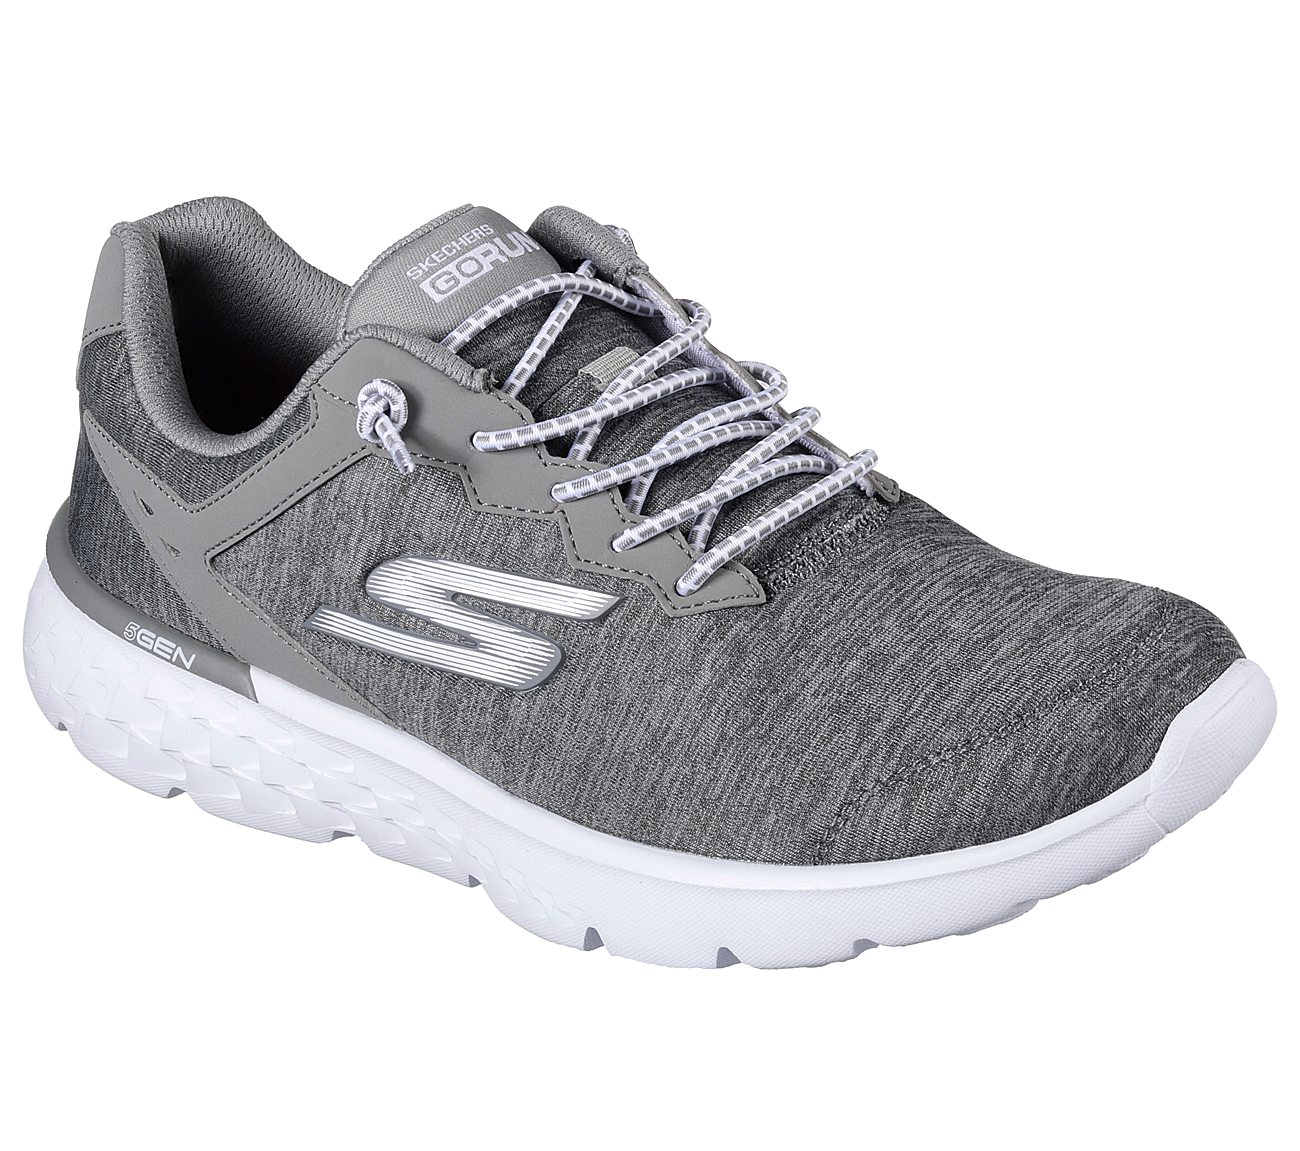 SKECHERS Skechers GOrun 400 - Swiftly